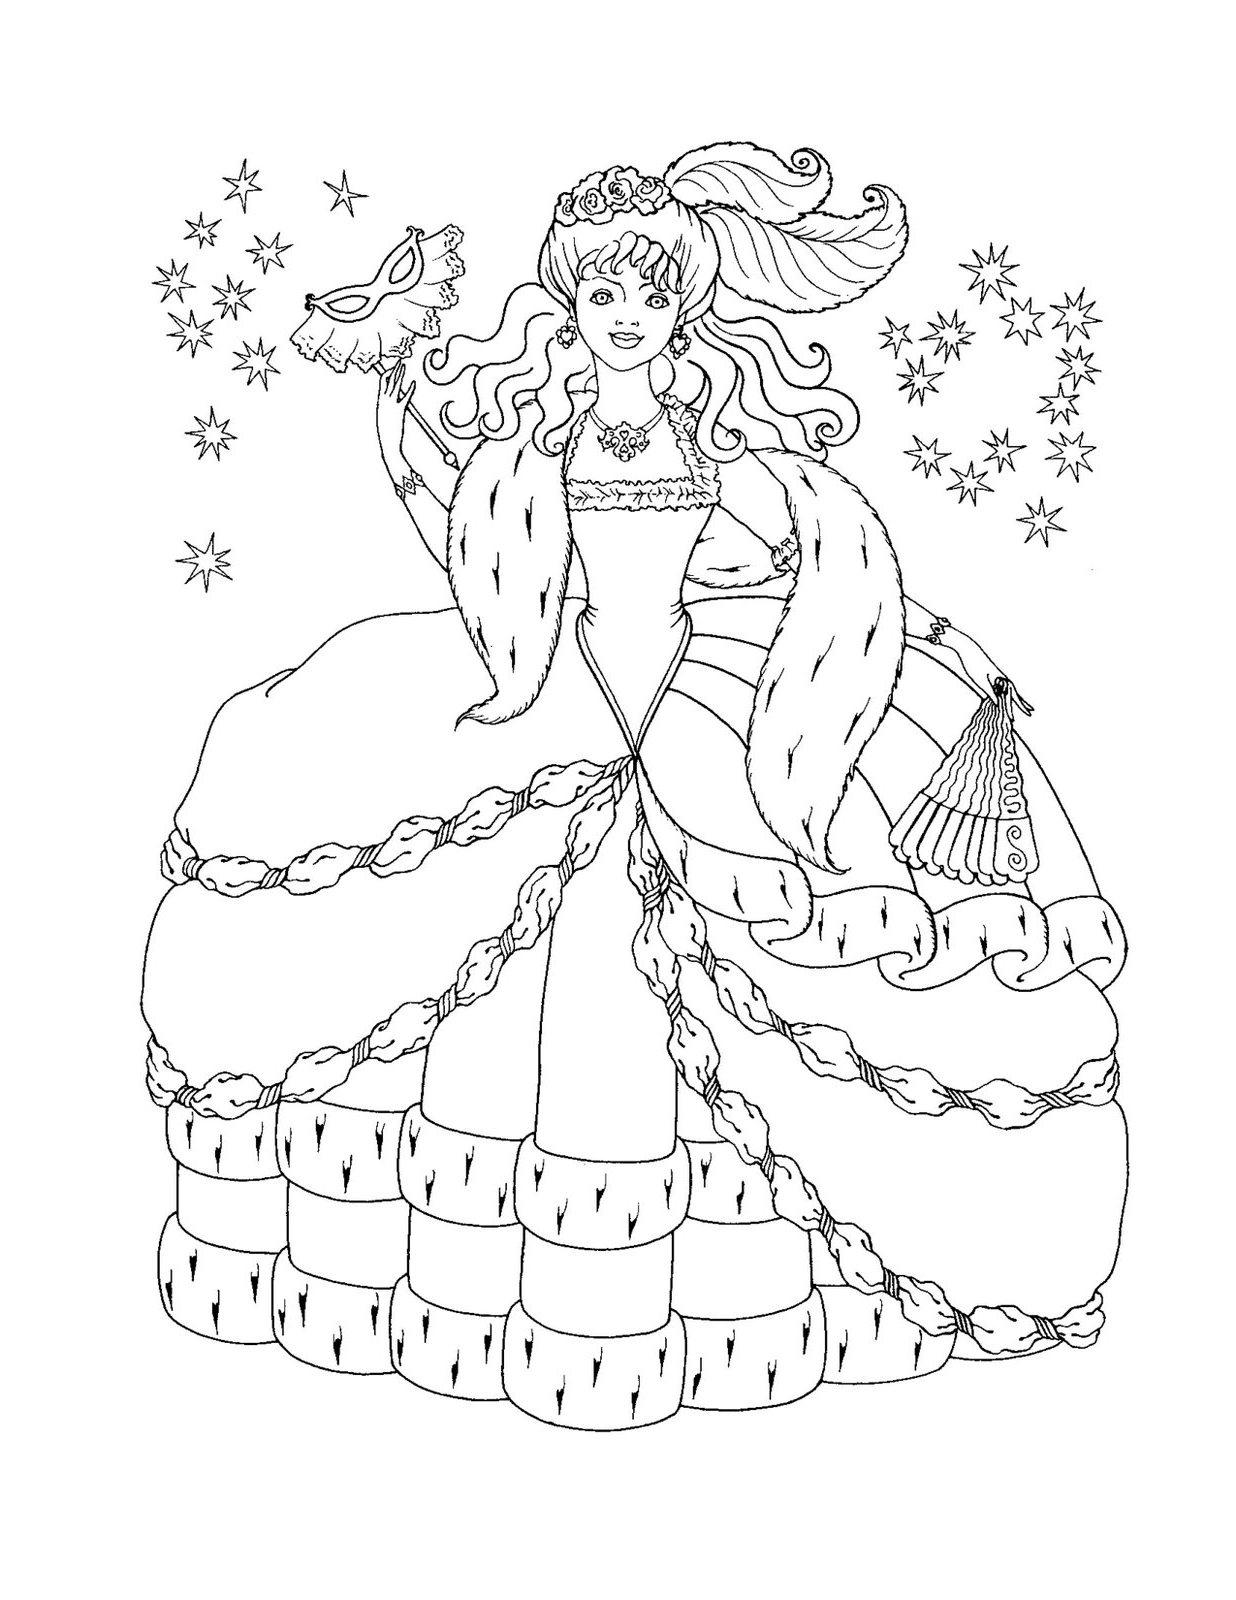 Free coloring disney princess pages - Disney Princess Printables Coloring Pages